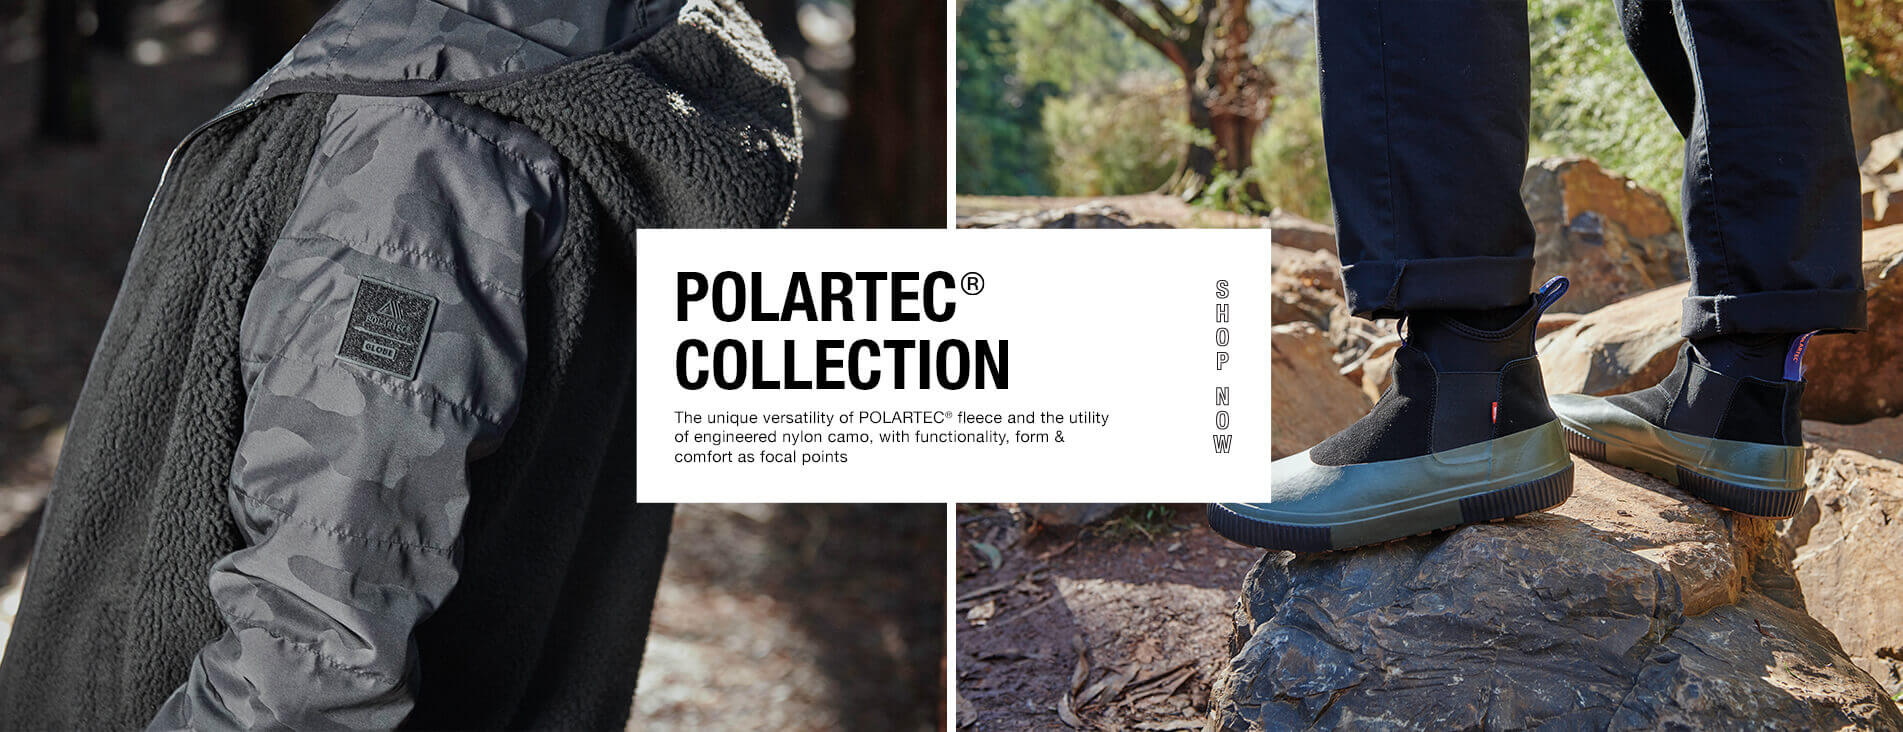 POLARTEC Collection